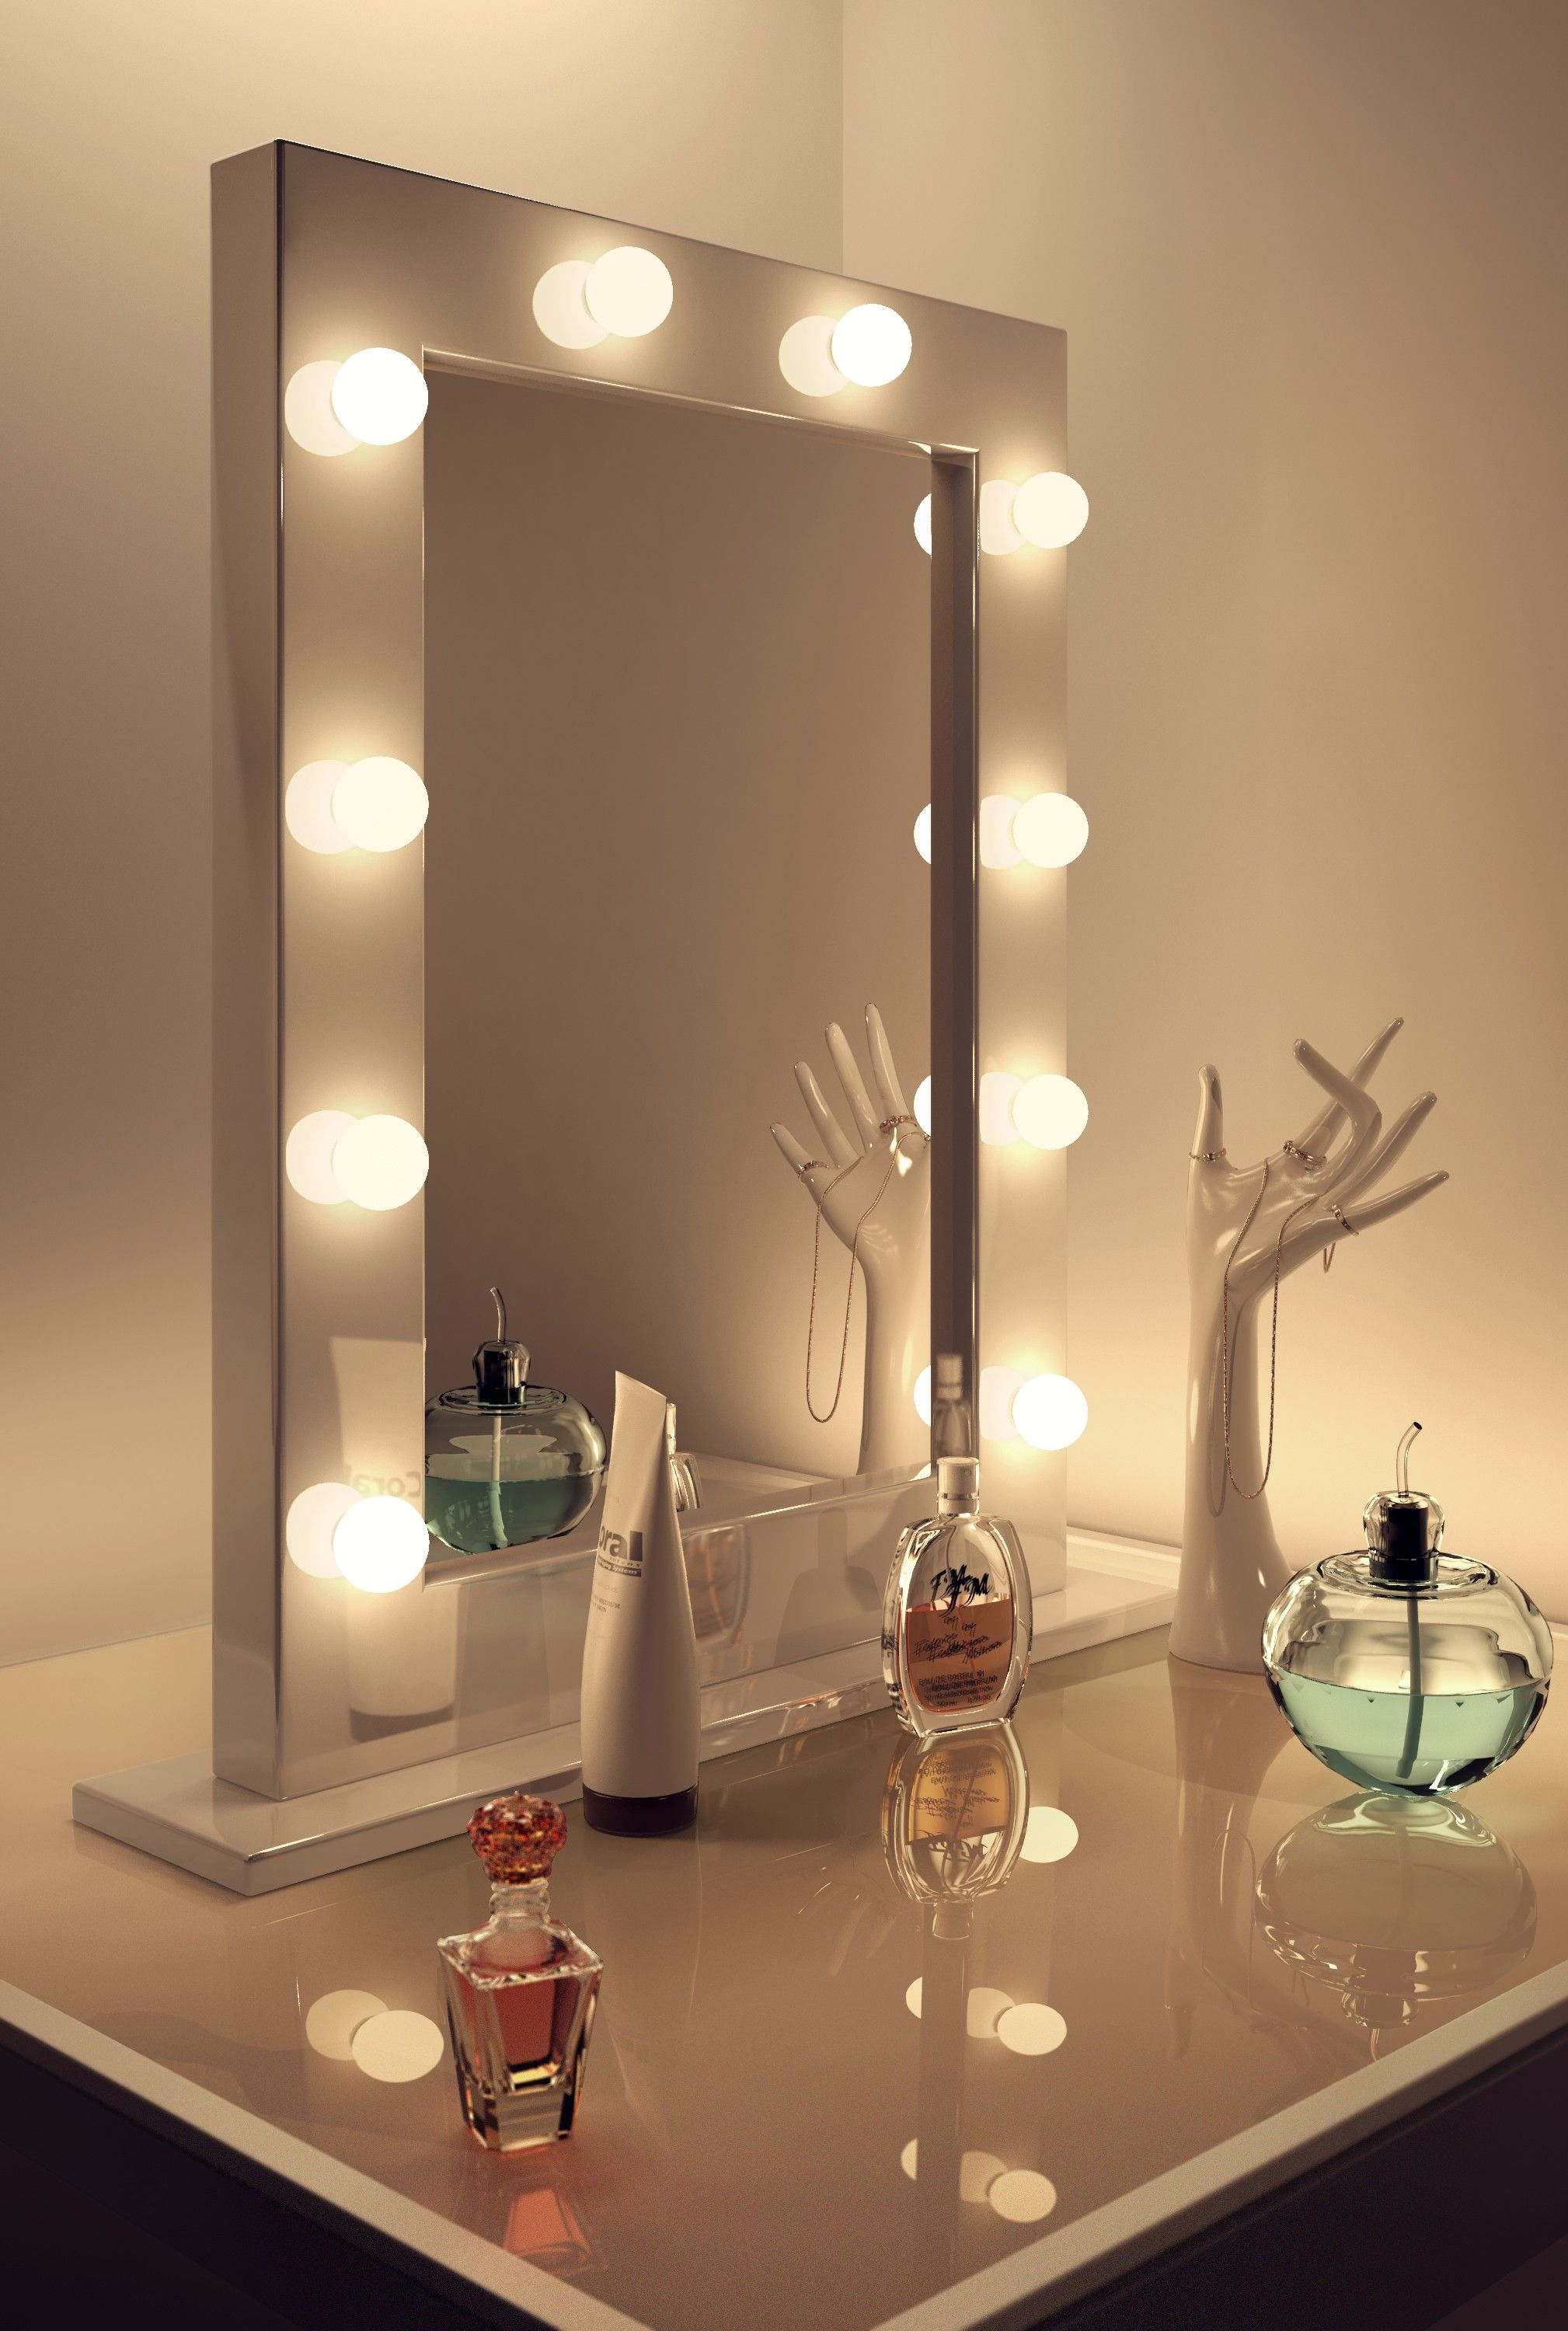 DIY Vanity Mirror Ideas To Make Your Room More Beautiful Tags: DIY Vanity Mirror  With Lights | Bathroom Vanity Mirror | Vanity Mirror Cabinet | Rustic ...